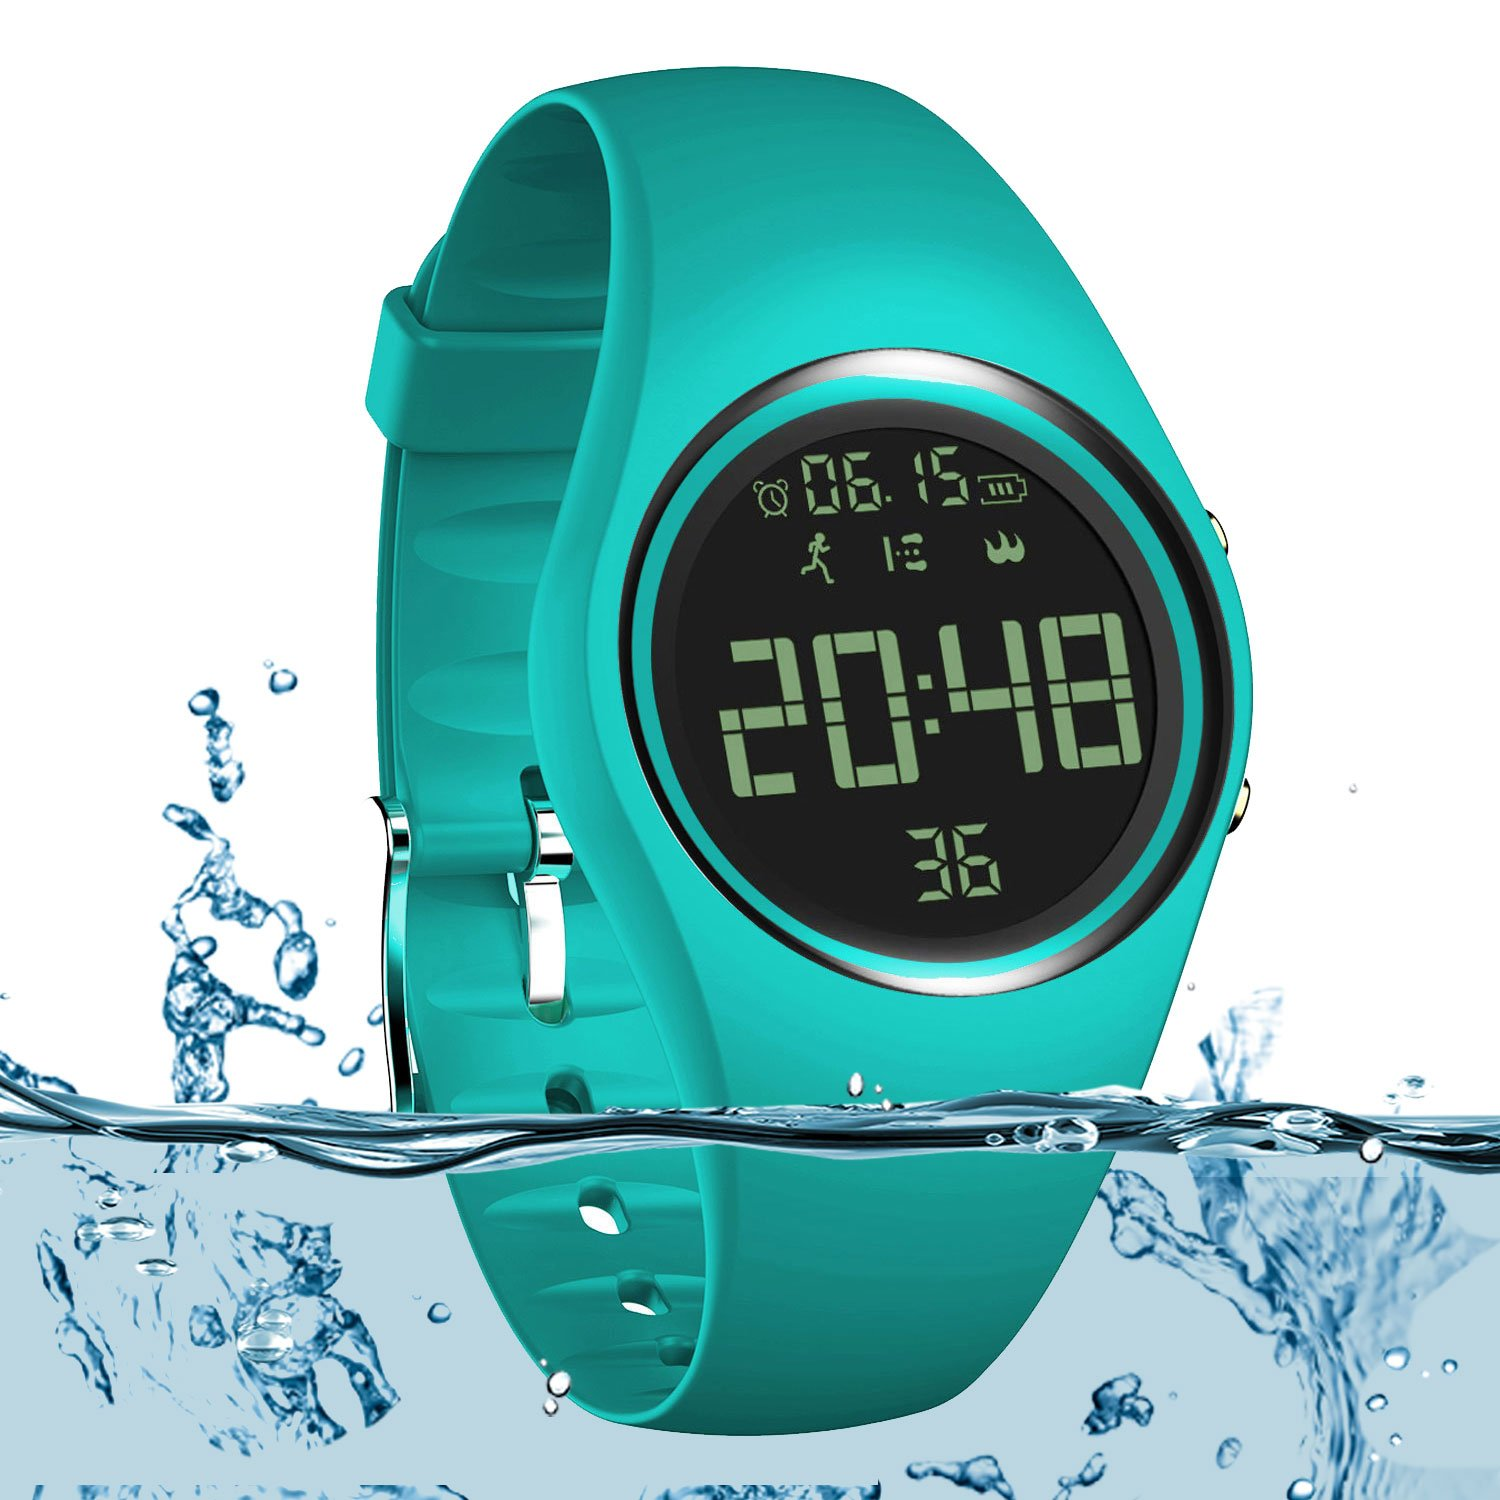 3D Non-Bluetooth Pedometer Watch Sport Wristband IP68 Swimming Water-resistant Fitness Tracker with Accurately Track Steps/Distance/Calorie/Clock/Timer for Walking Running Kids Men Women (Marrs Green)